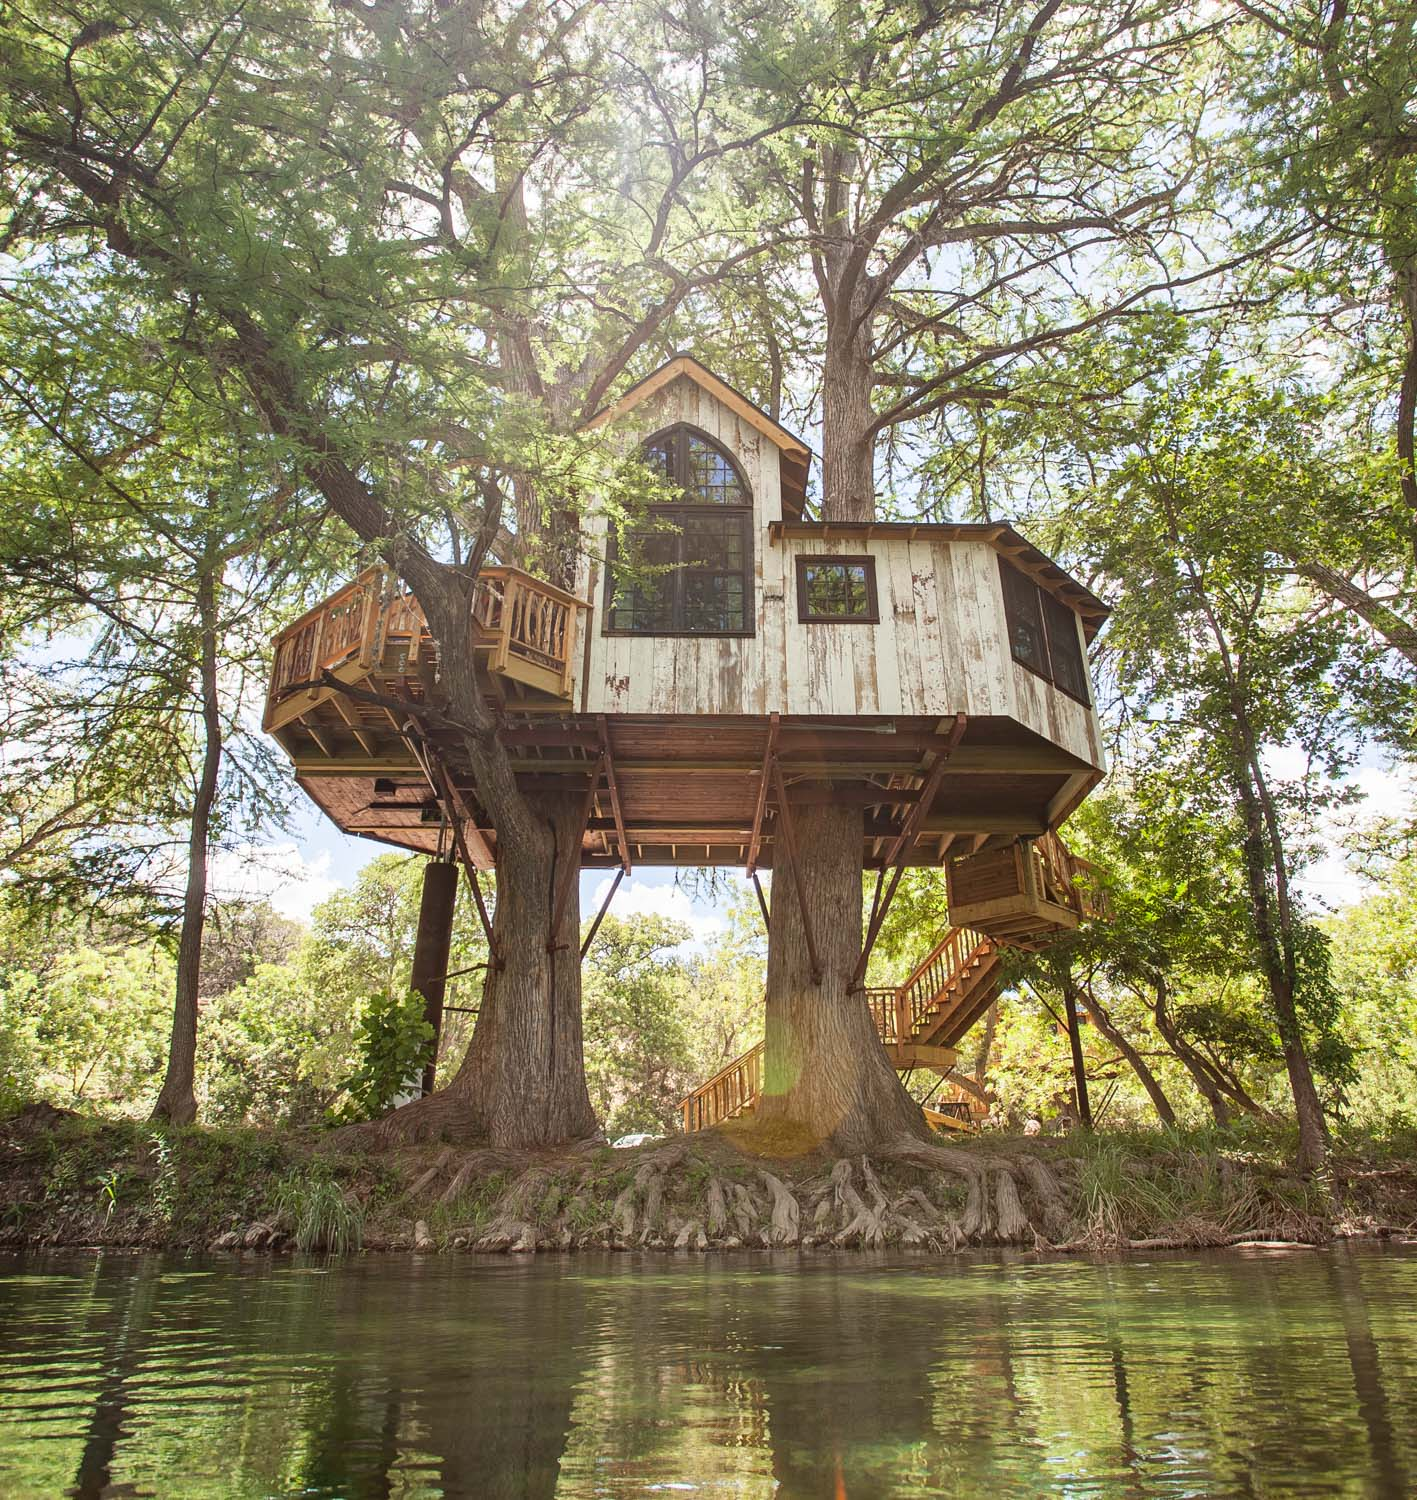 Spring ushers in prime swimming season in the river at Treehouse Utopia